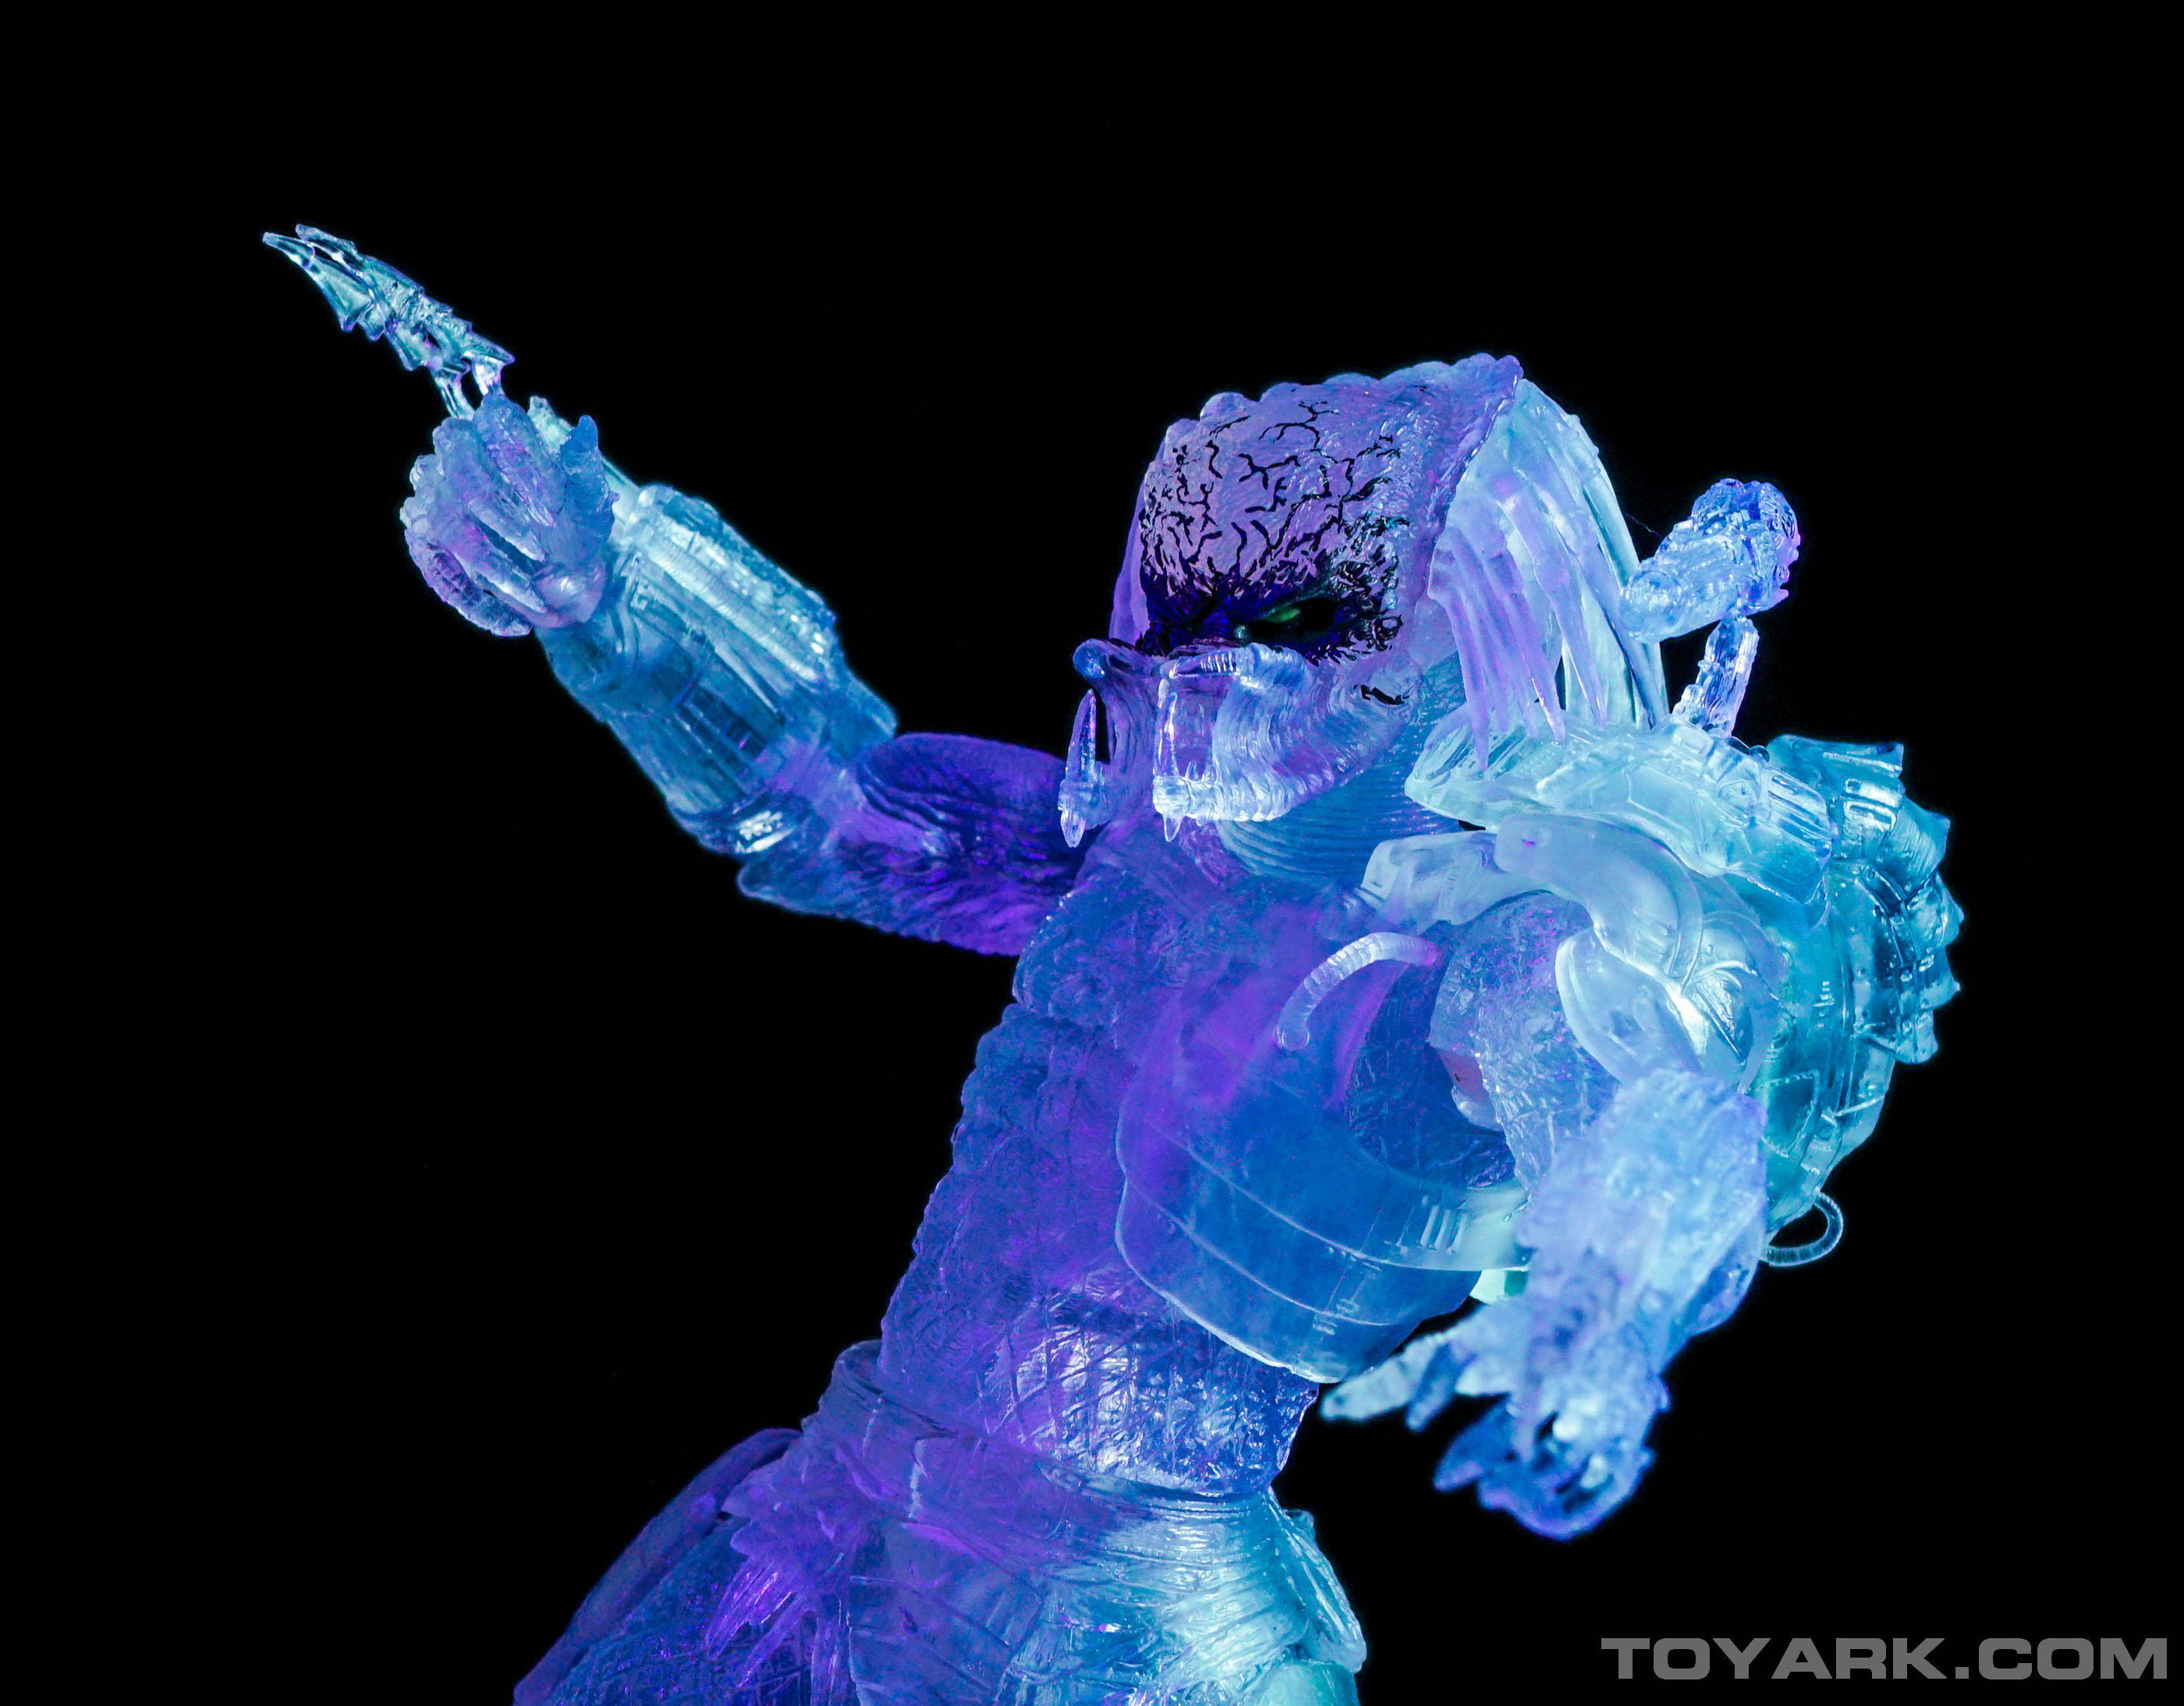 http://news.toyark.com/wp-content/uploads/sites/4/2015/08/NECA-Ambush-Predator-032.jpg